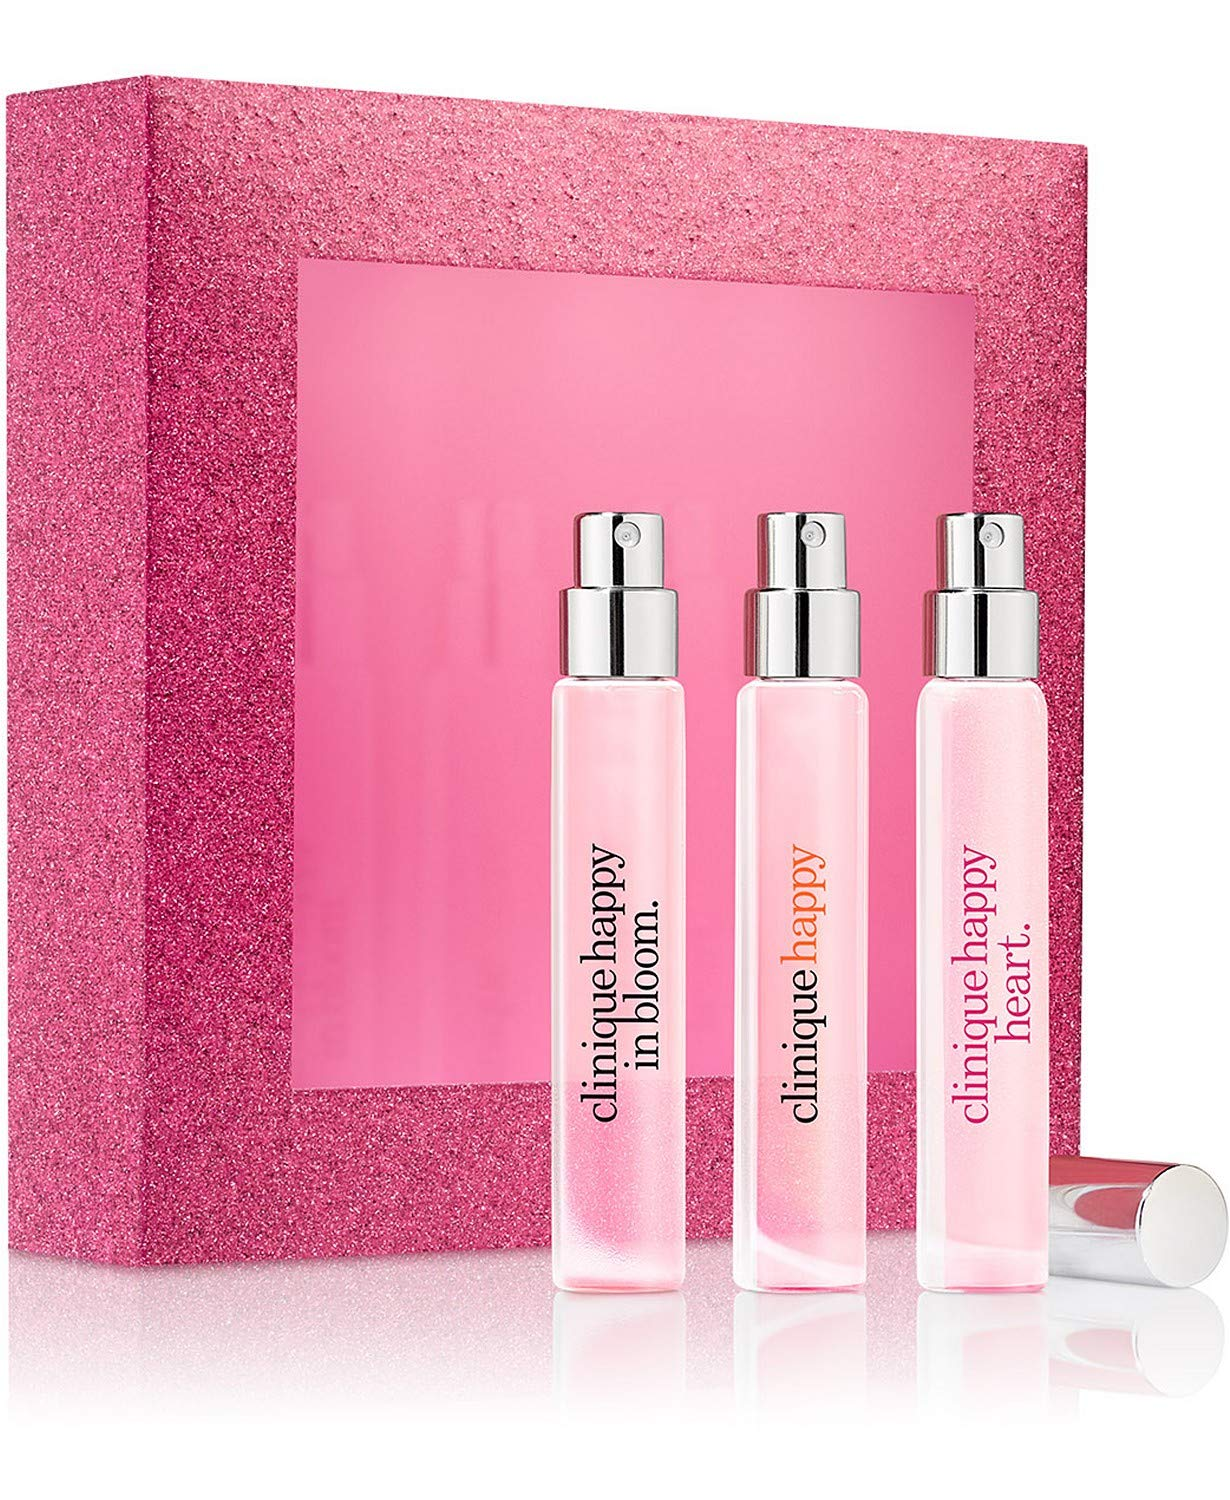 Clinique A Little Happiness Set 3-Pc. Set: Clinique Happy, Happy Heart and Happy in Bloom, 0.17fl.oz./ 5ml by Clinique